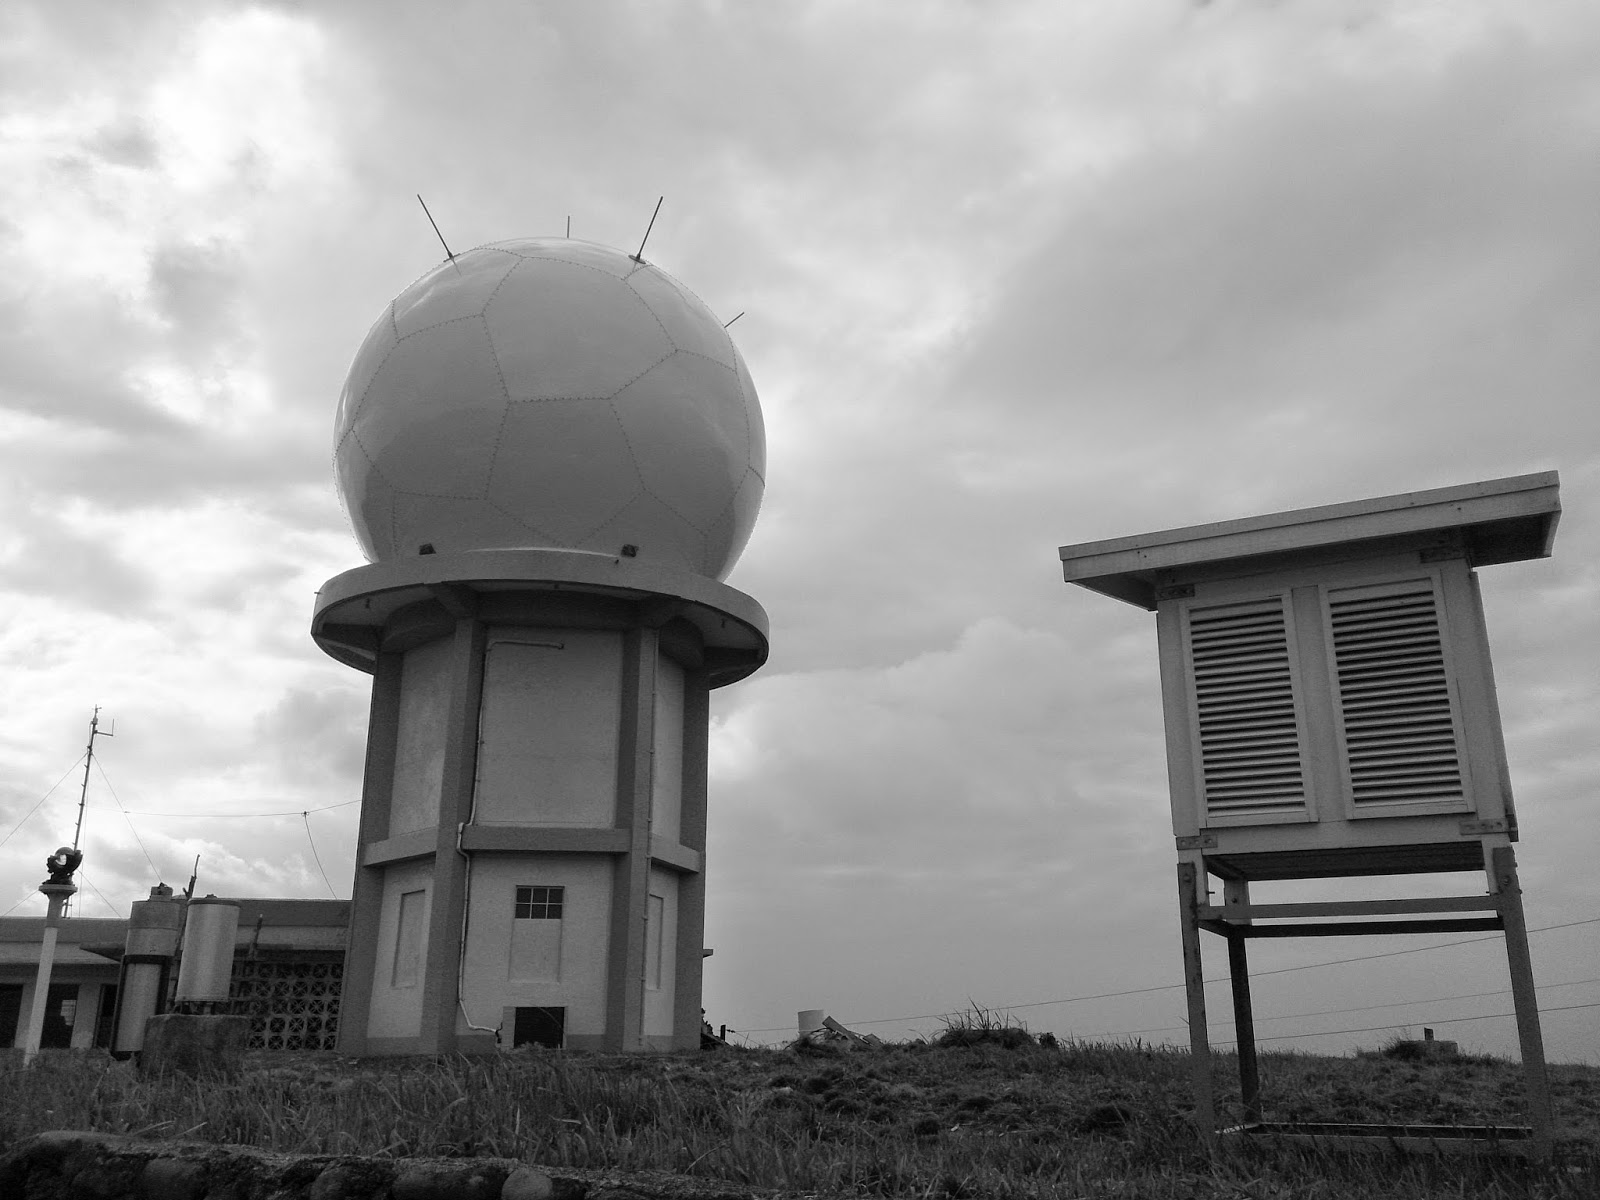 PAGASA Weather station, Batanes